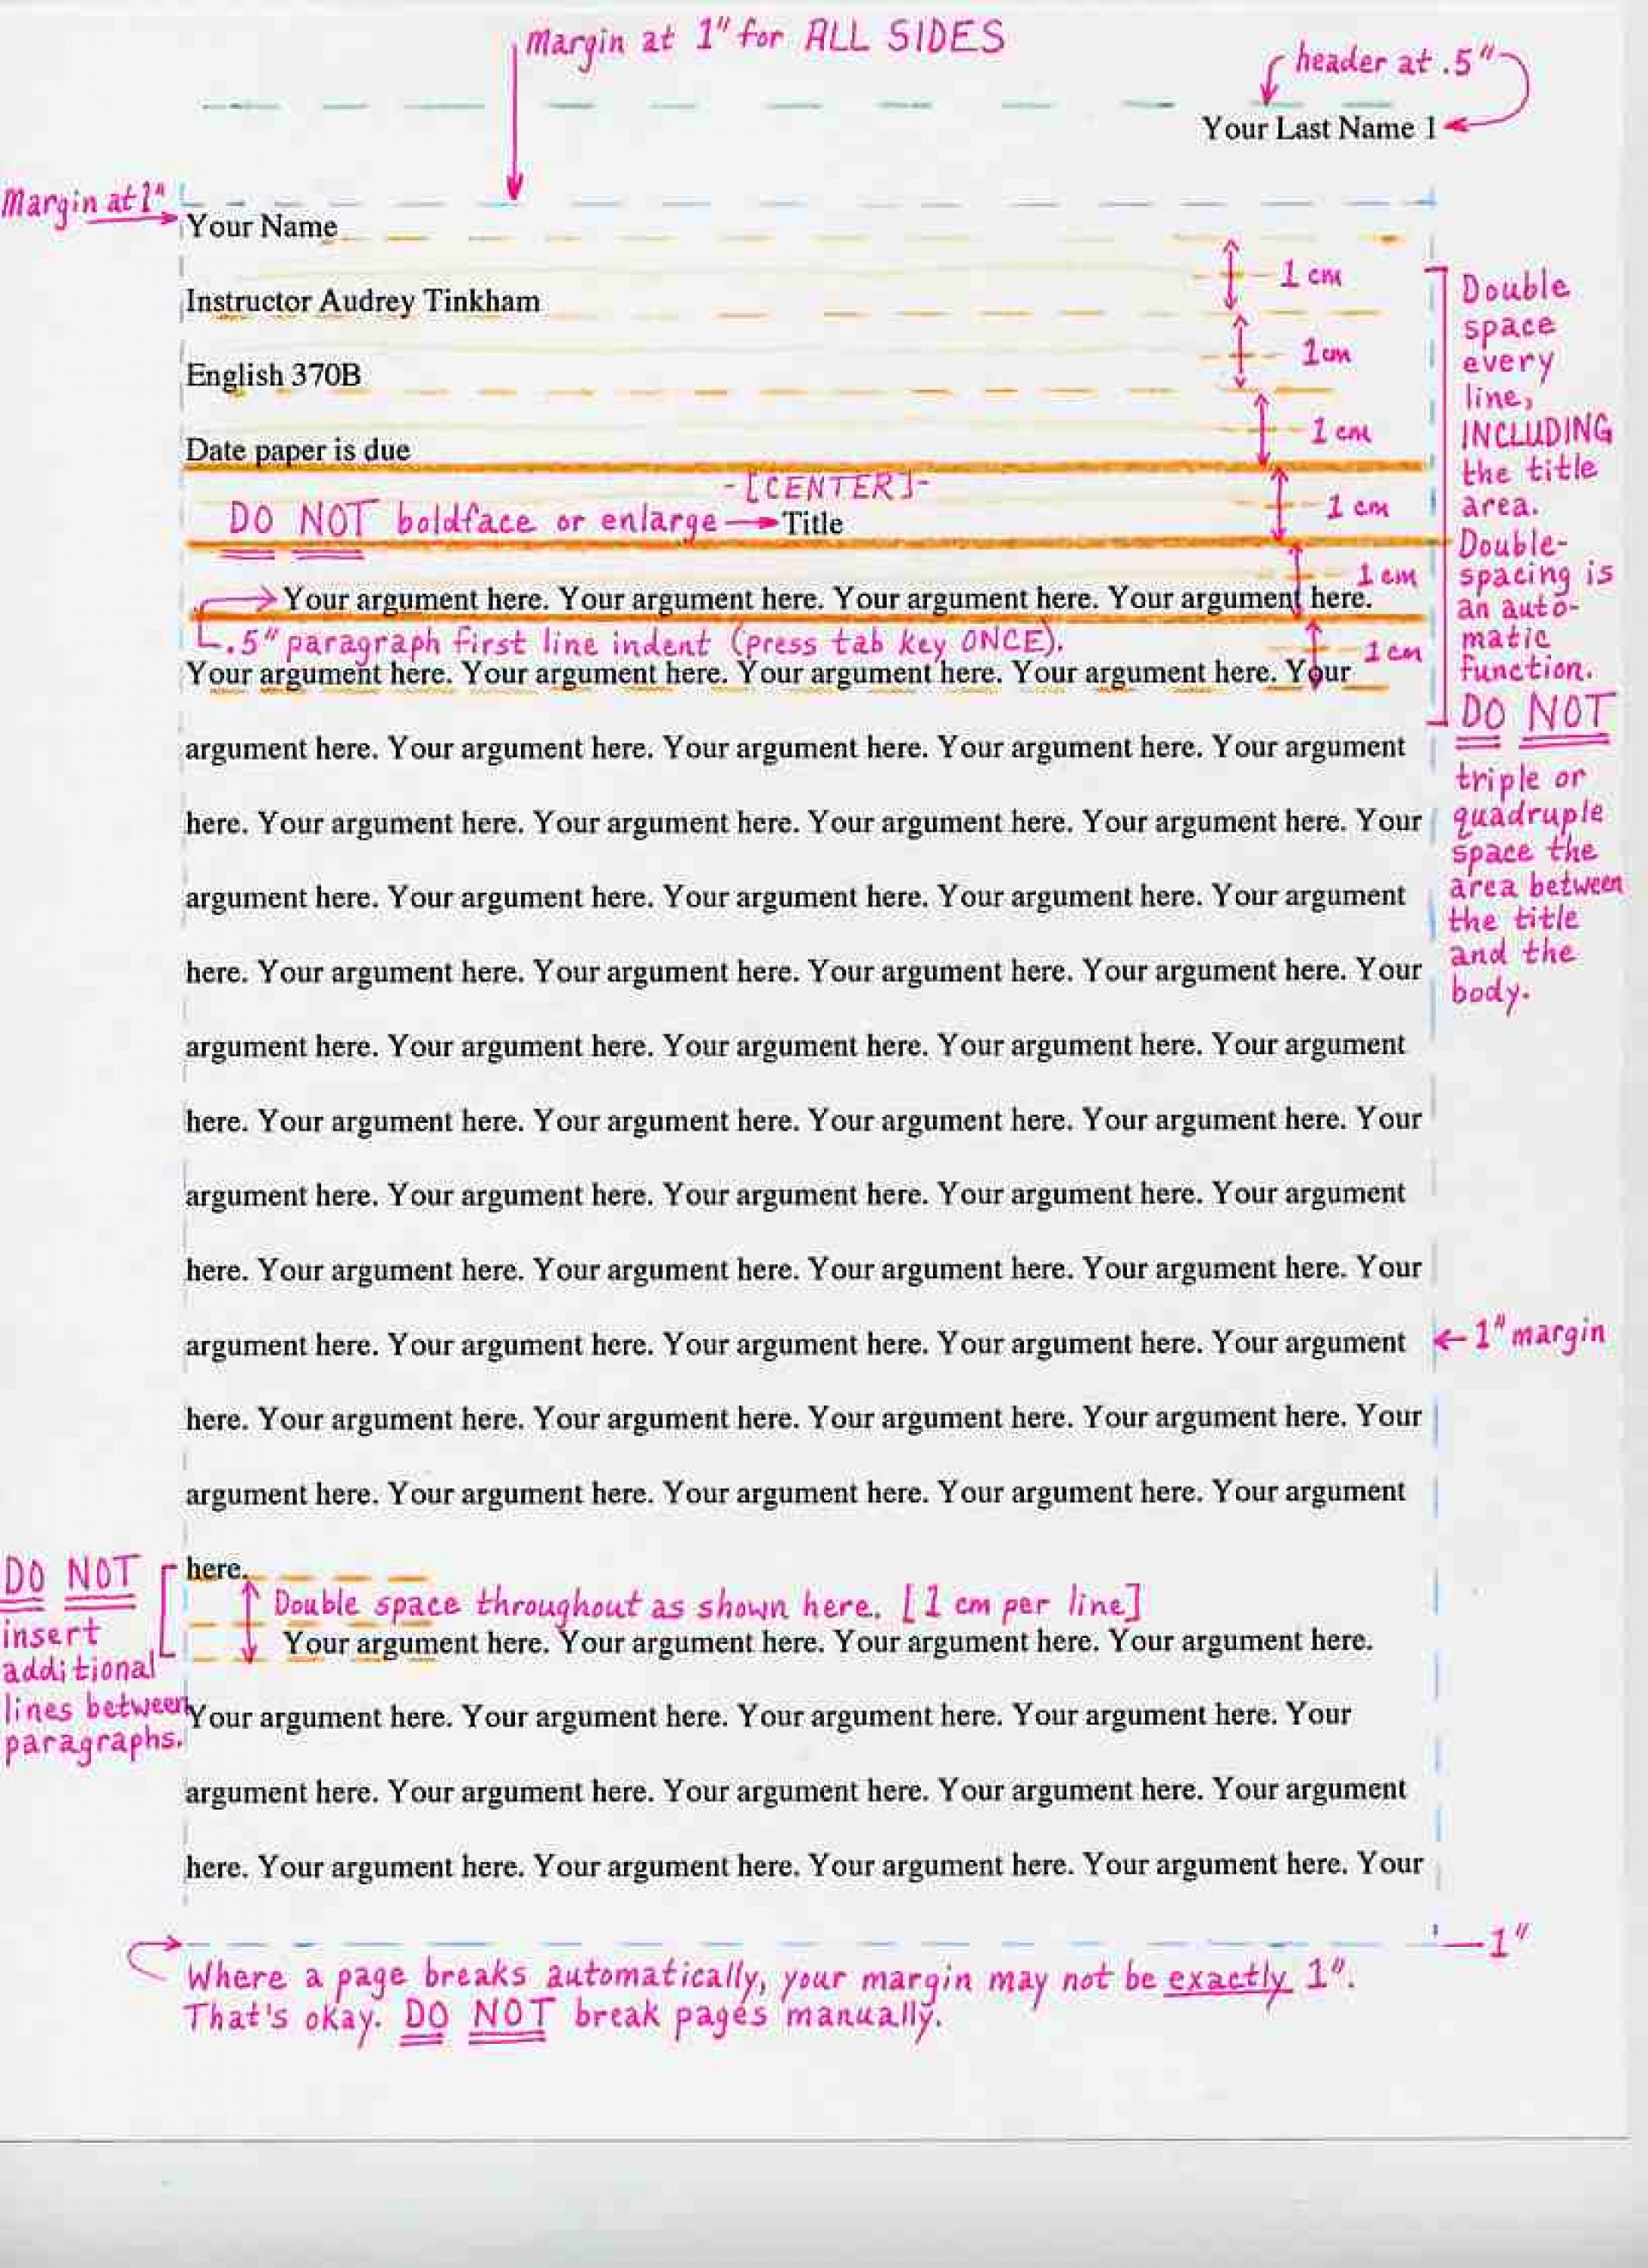 010 Img067 Essay Example Amazing Style Answer Harvard Format Guide 1920